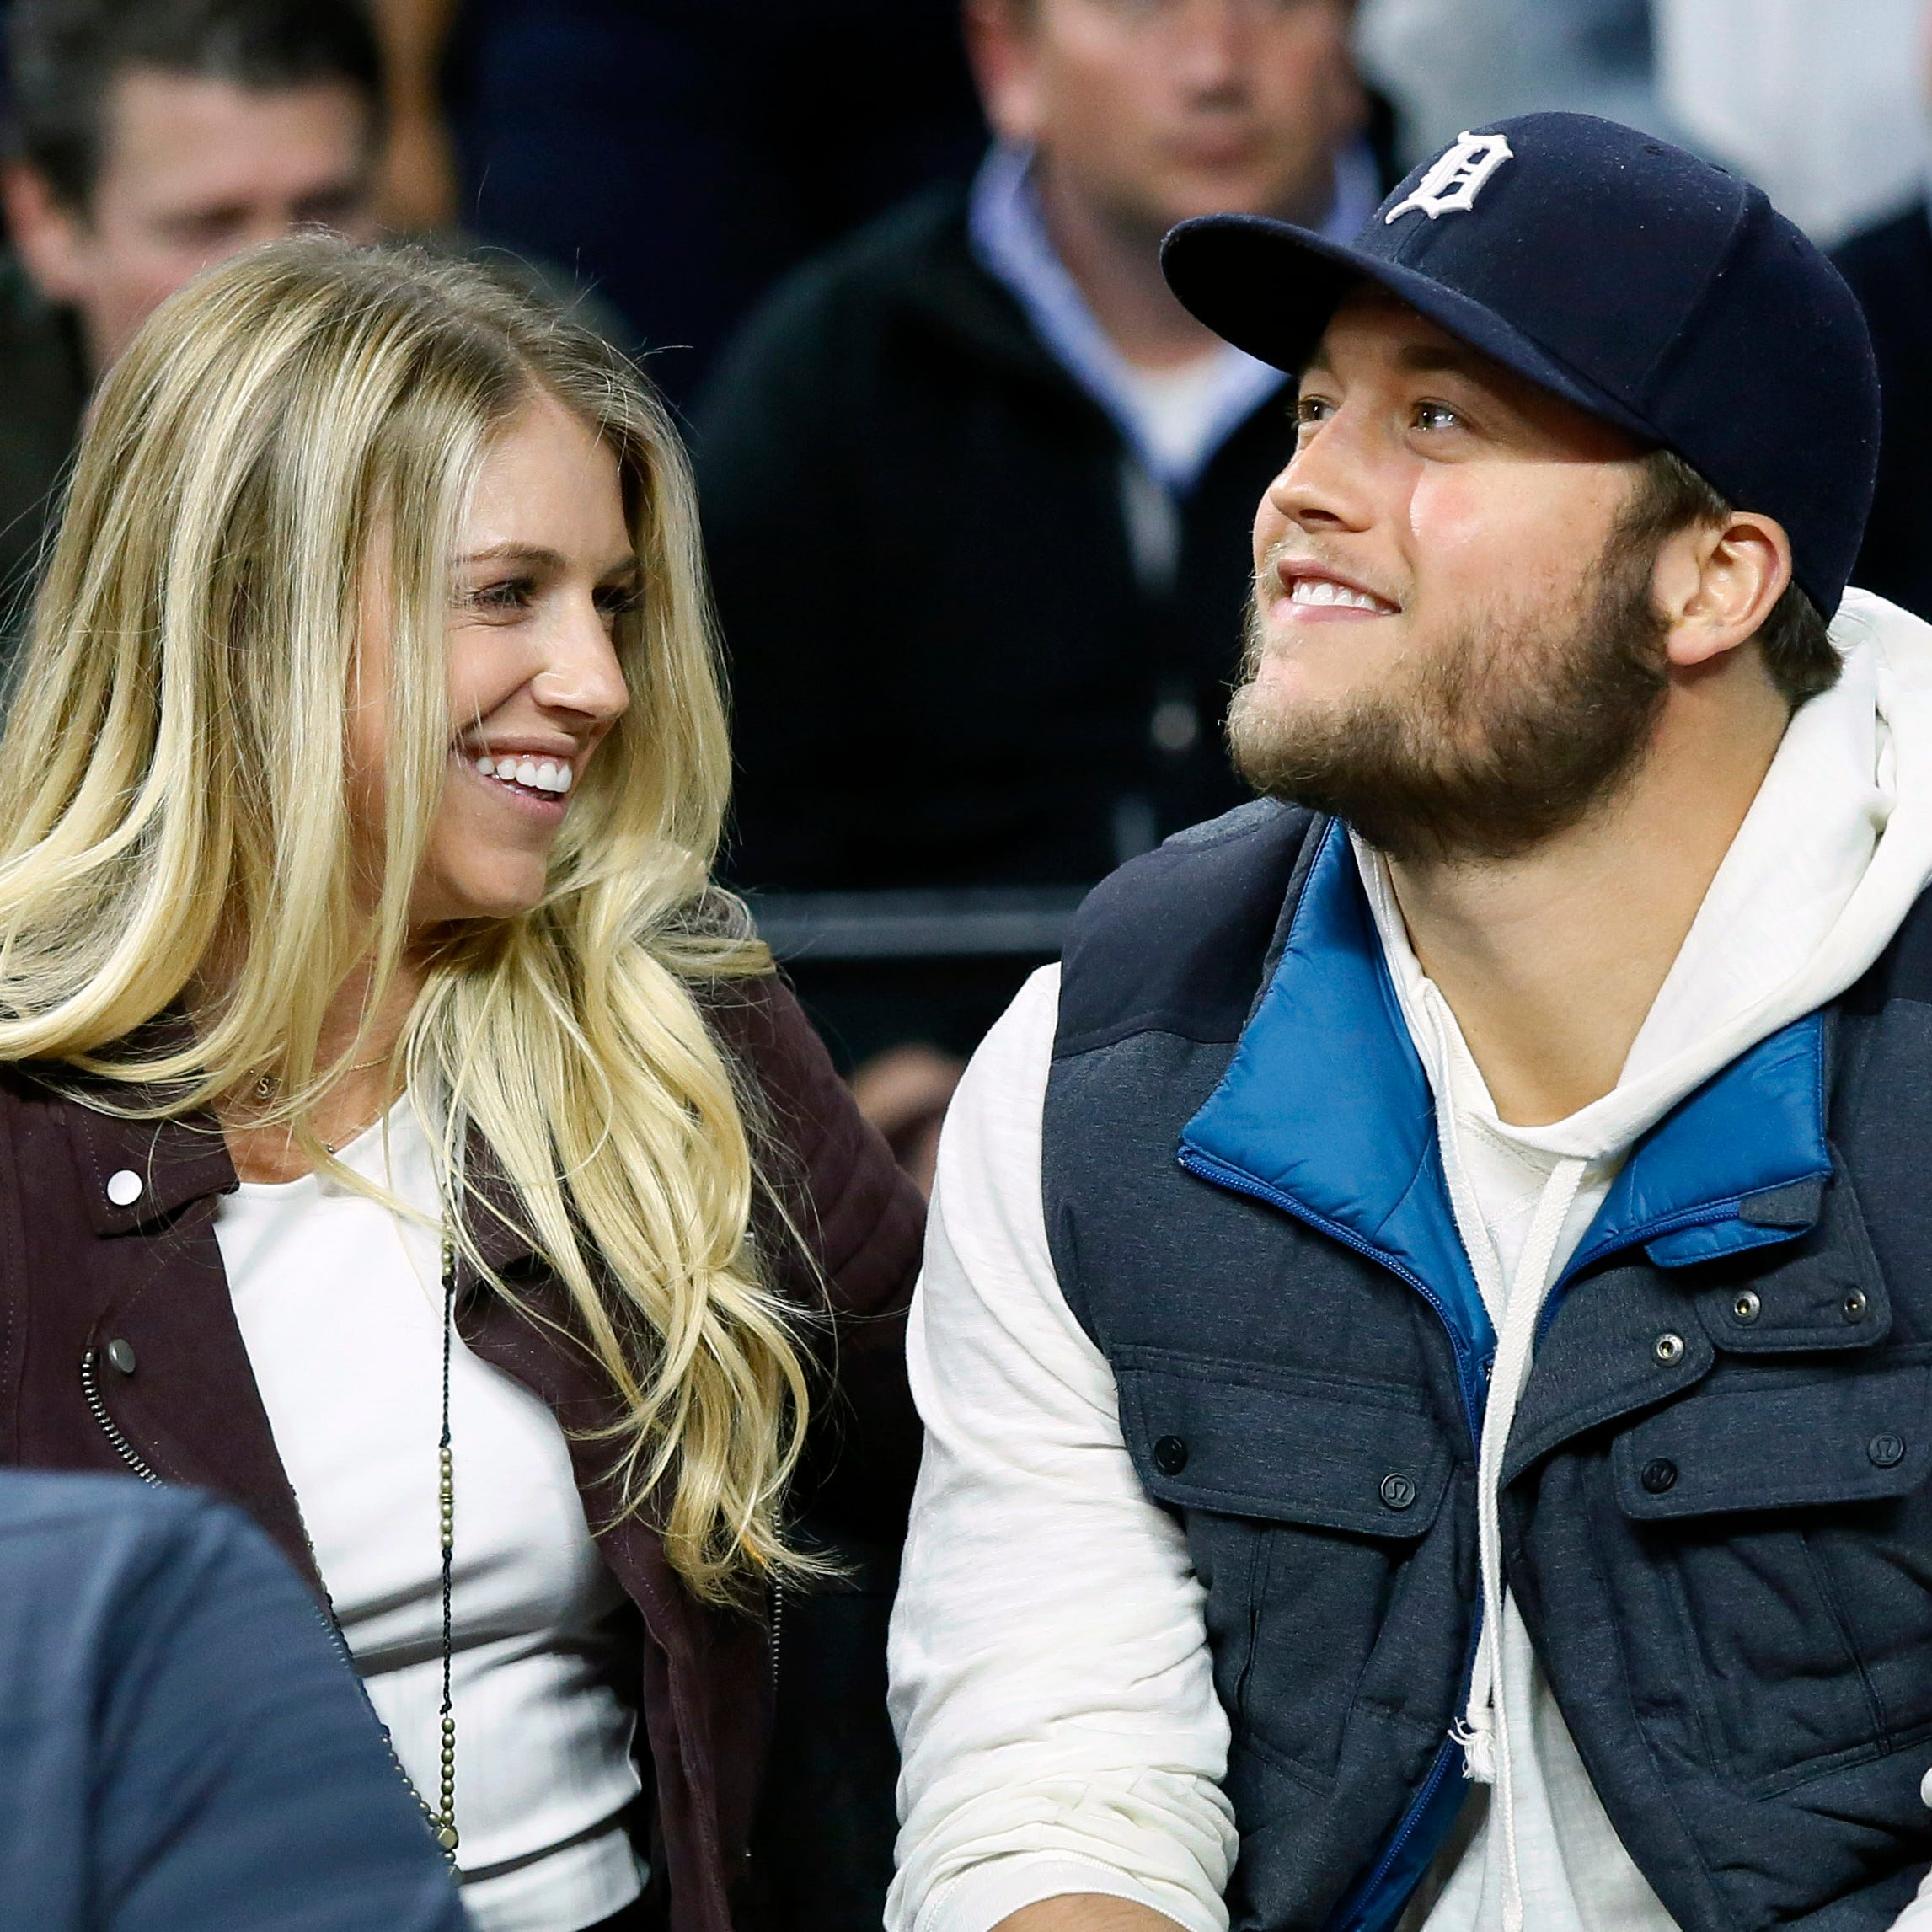 Lions' Matthew Stafford: Wife Kelly has 'leaned on' public support after surgery